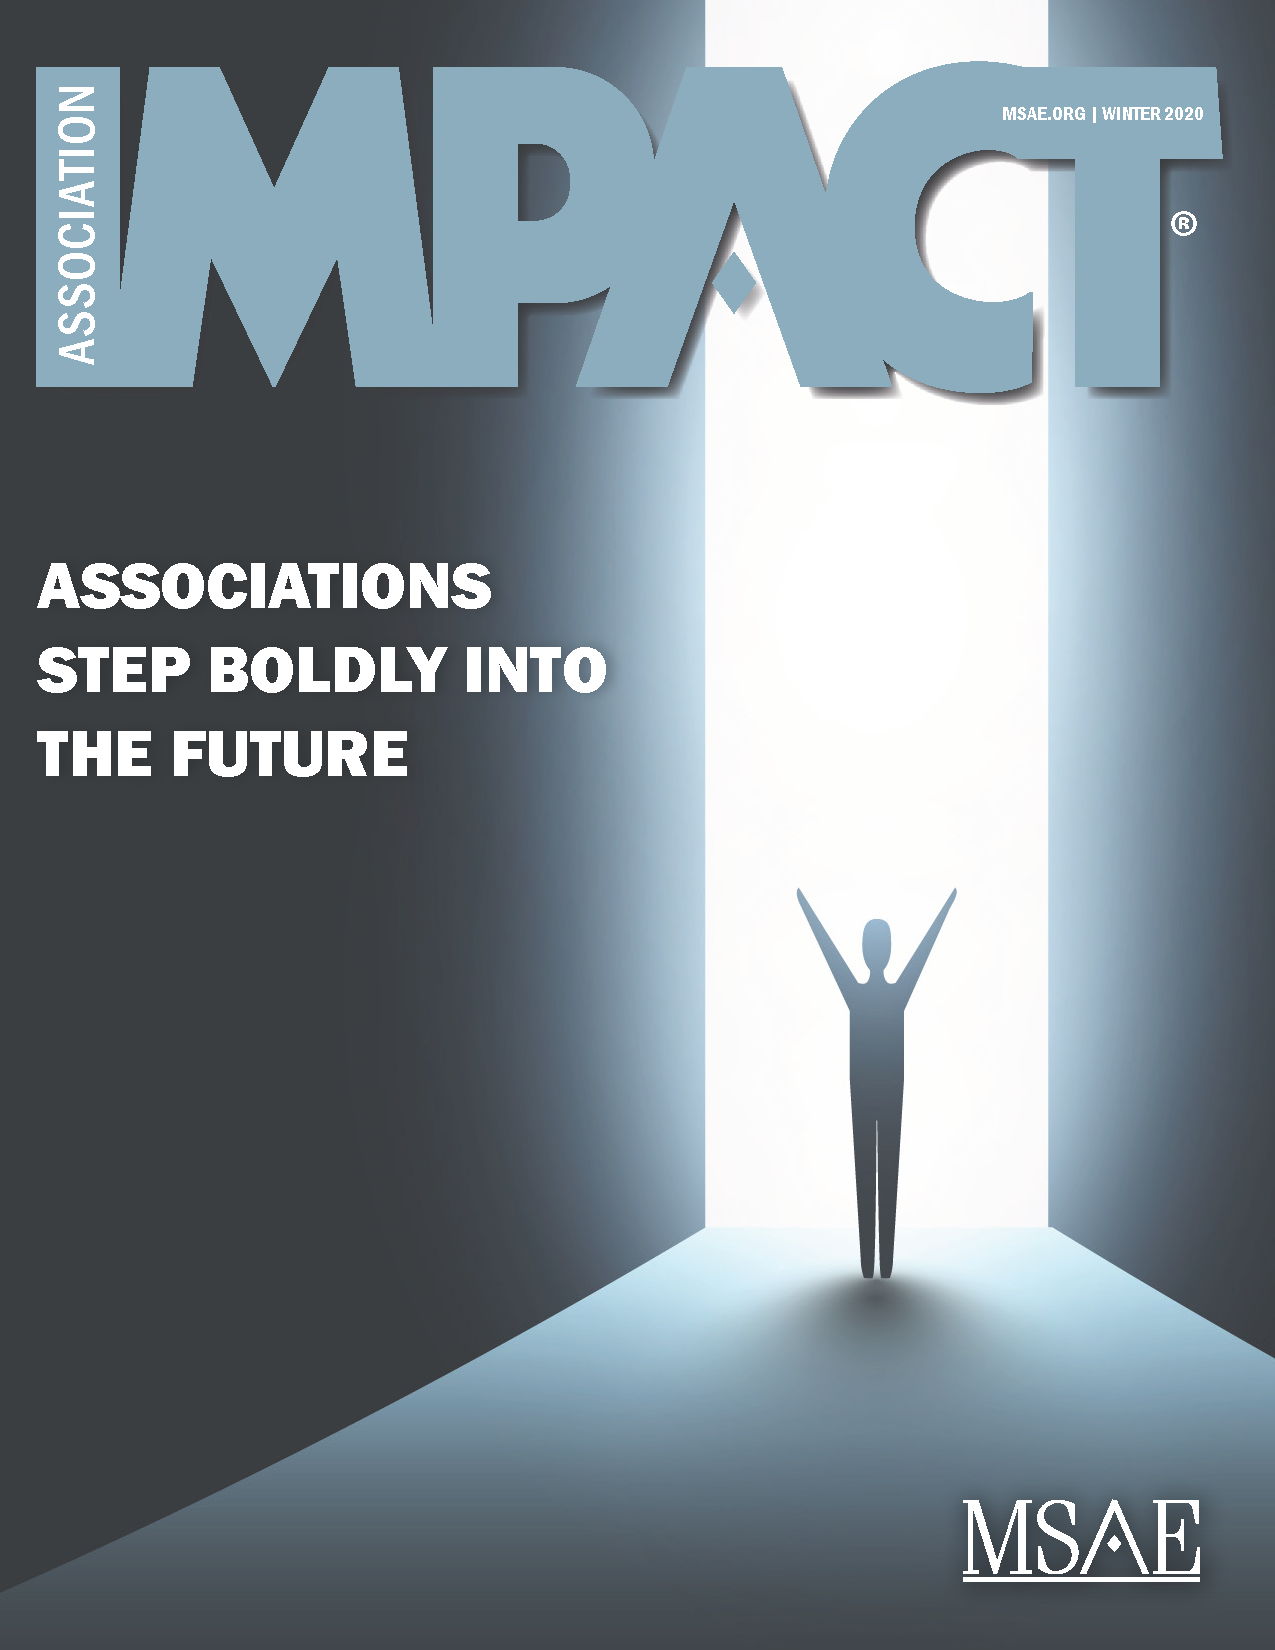 cover image of w20 edition of Impact magazine